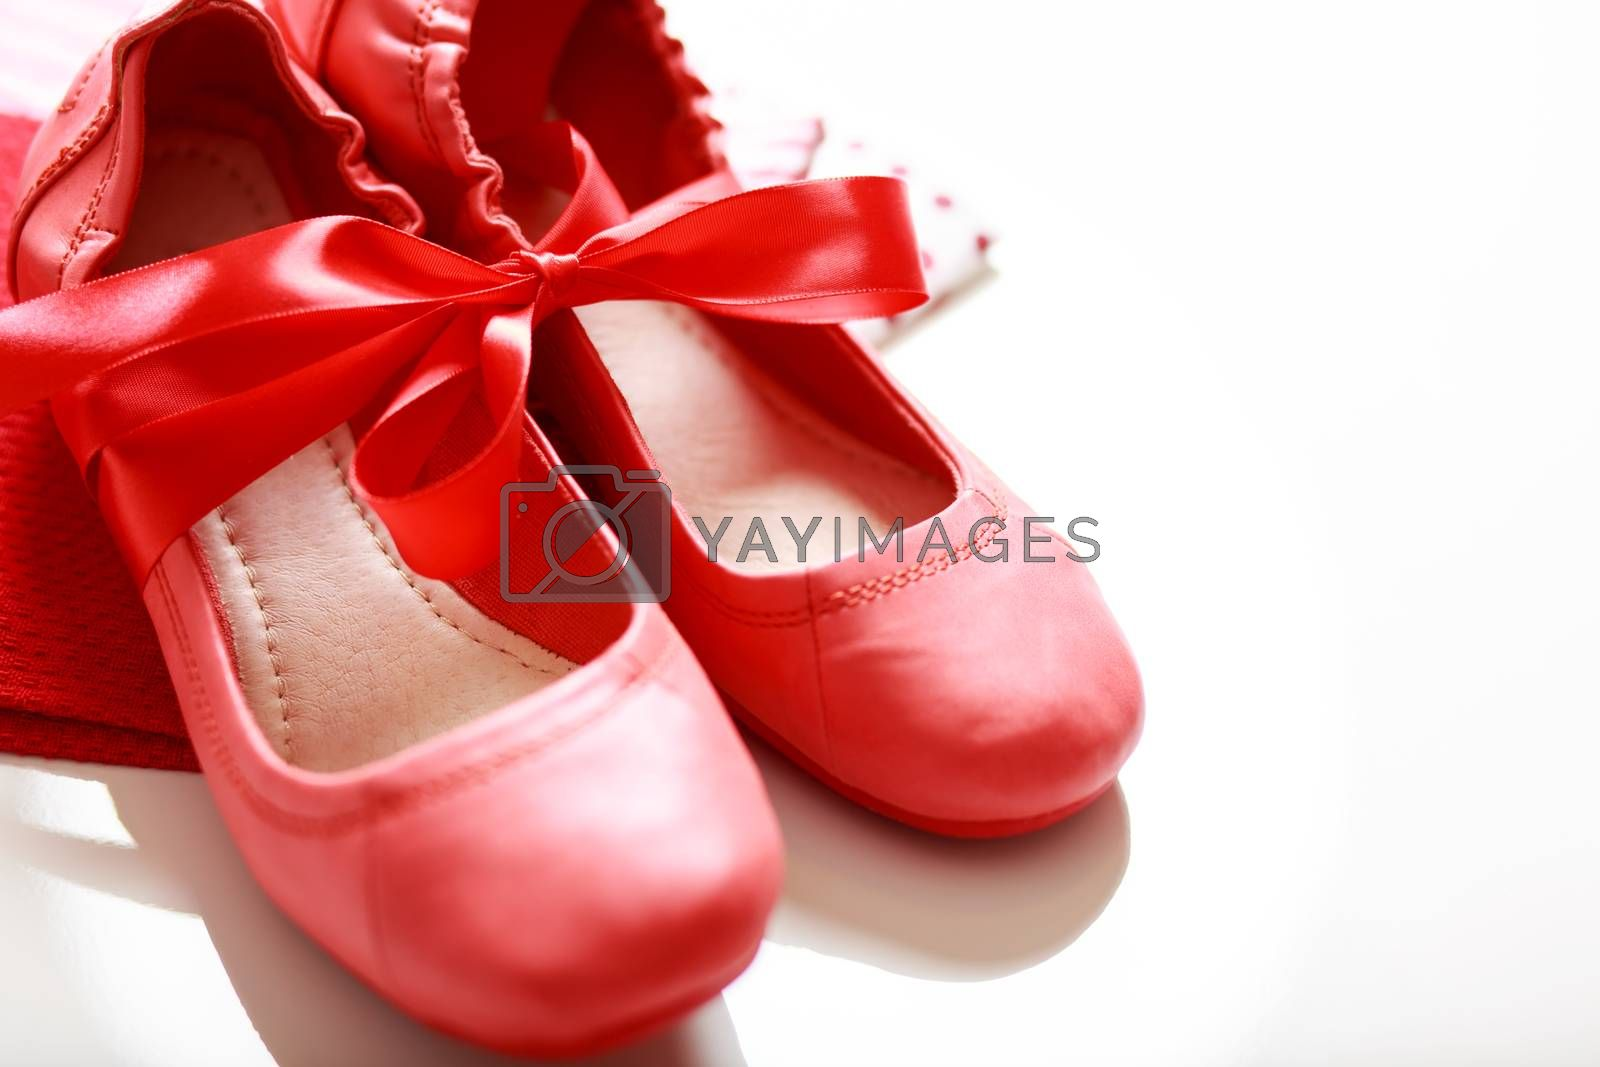 Royalty free image of Red shoes with ribbon  by melpomene